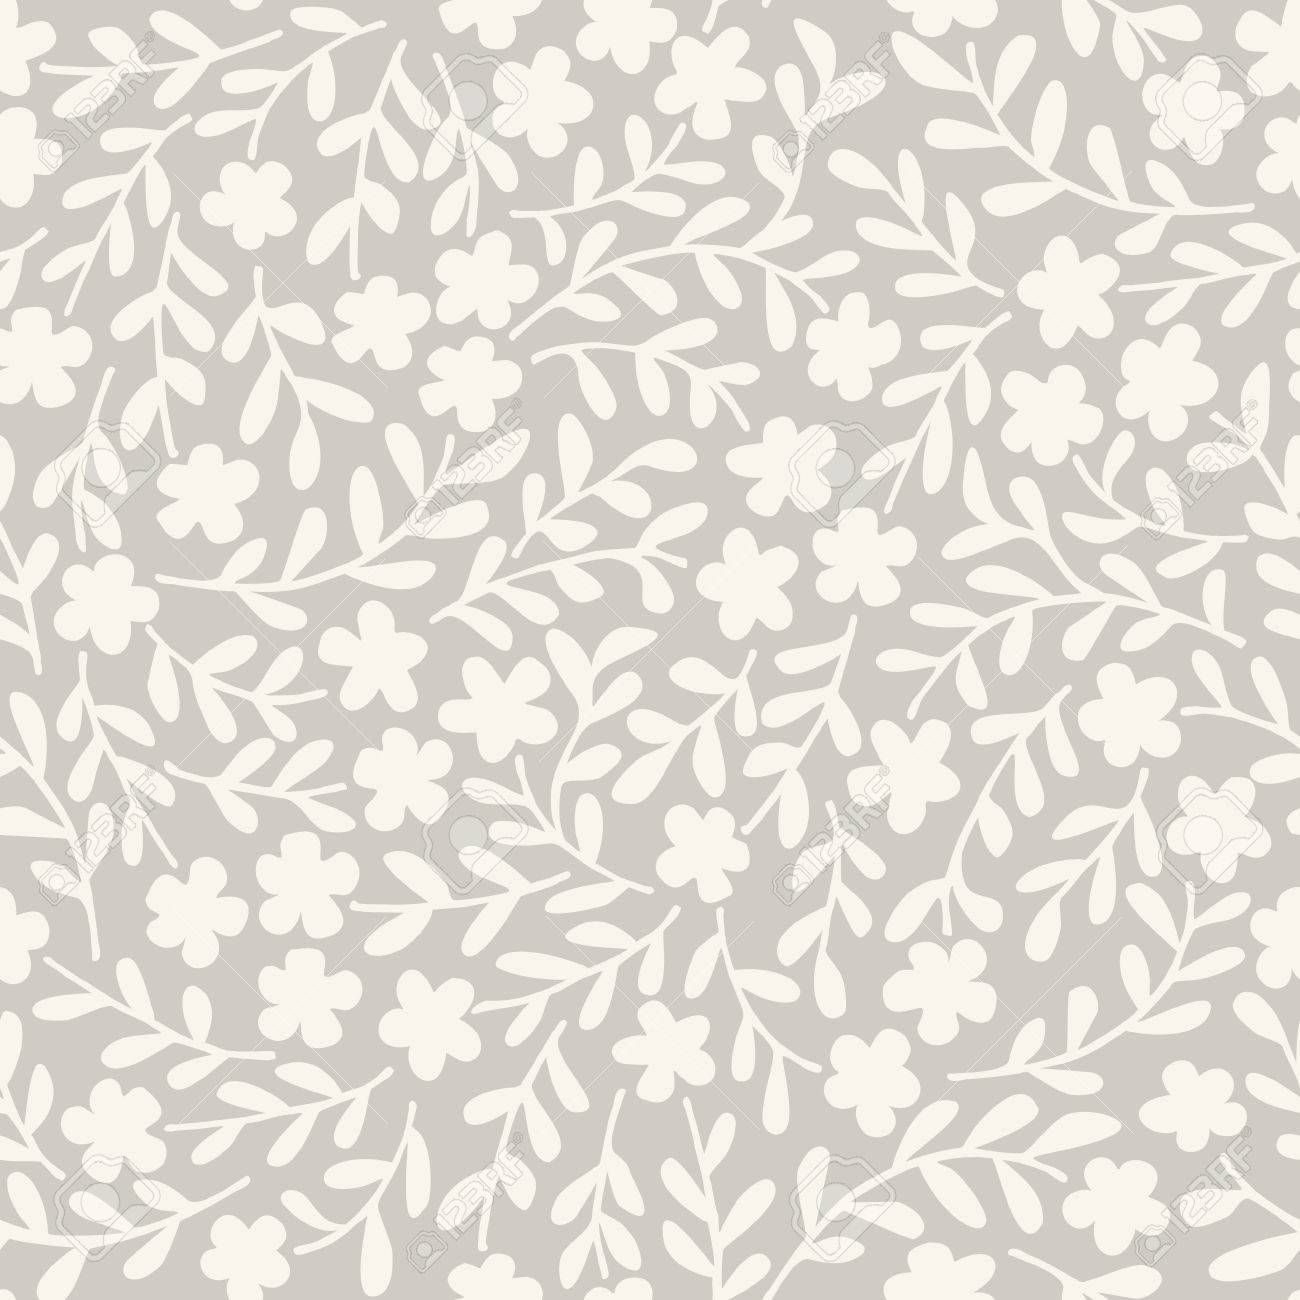 Simple seamless vector pattern with flowers - 35355228